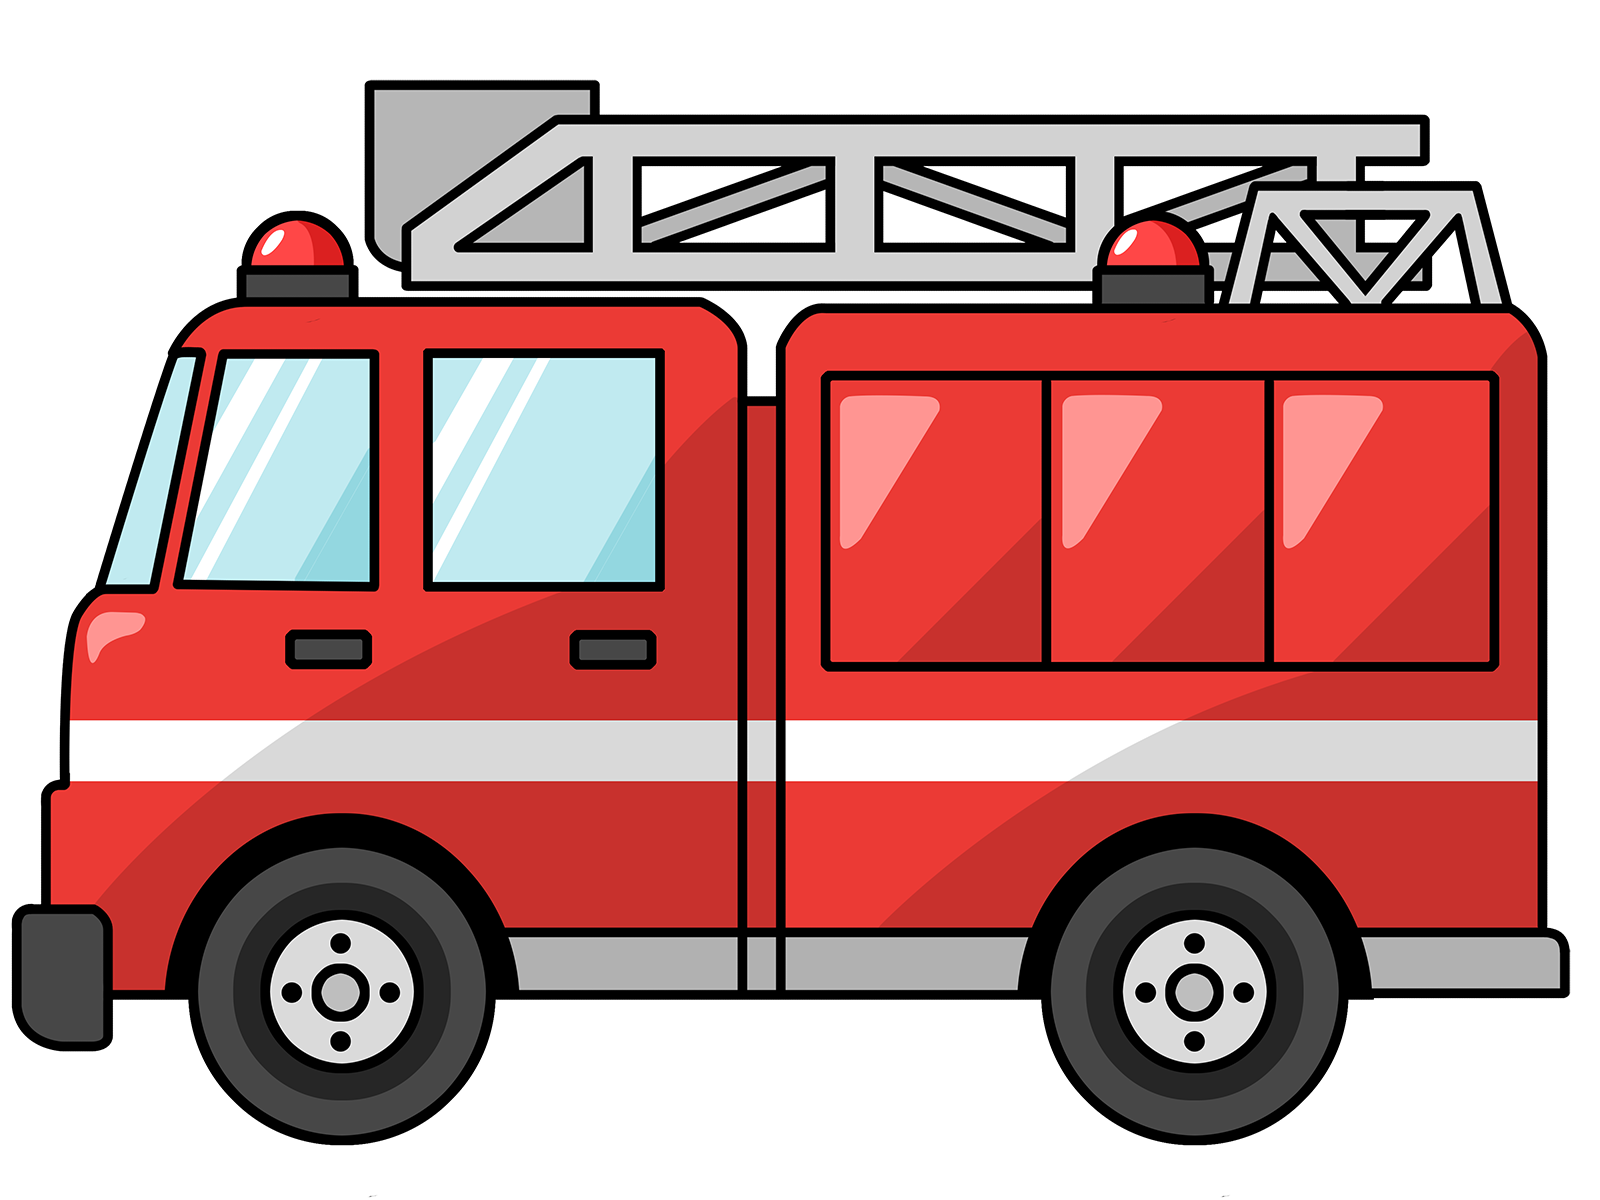 fire truck clipart google search education pinterest fire rh pinterest com fire truck clip art free download fire truck clipart free